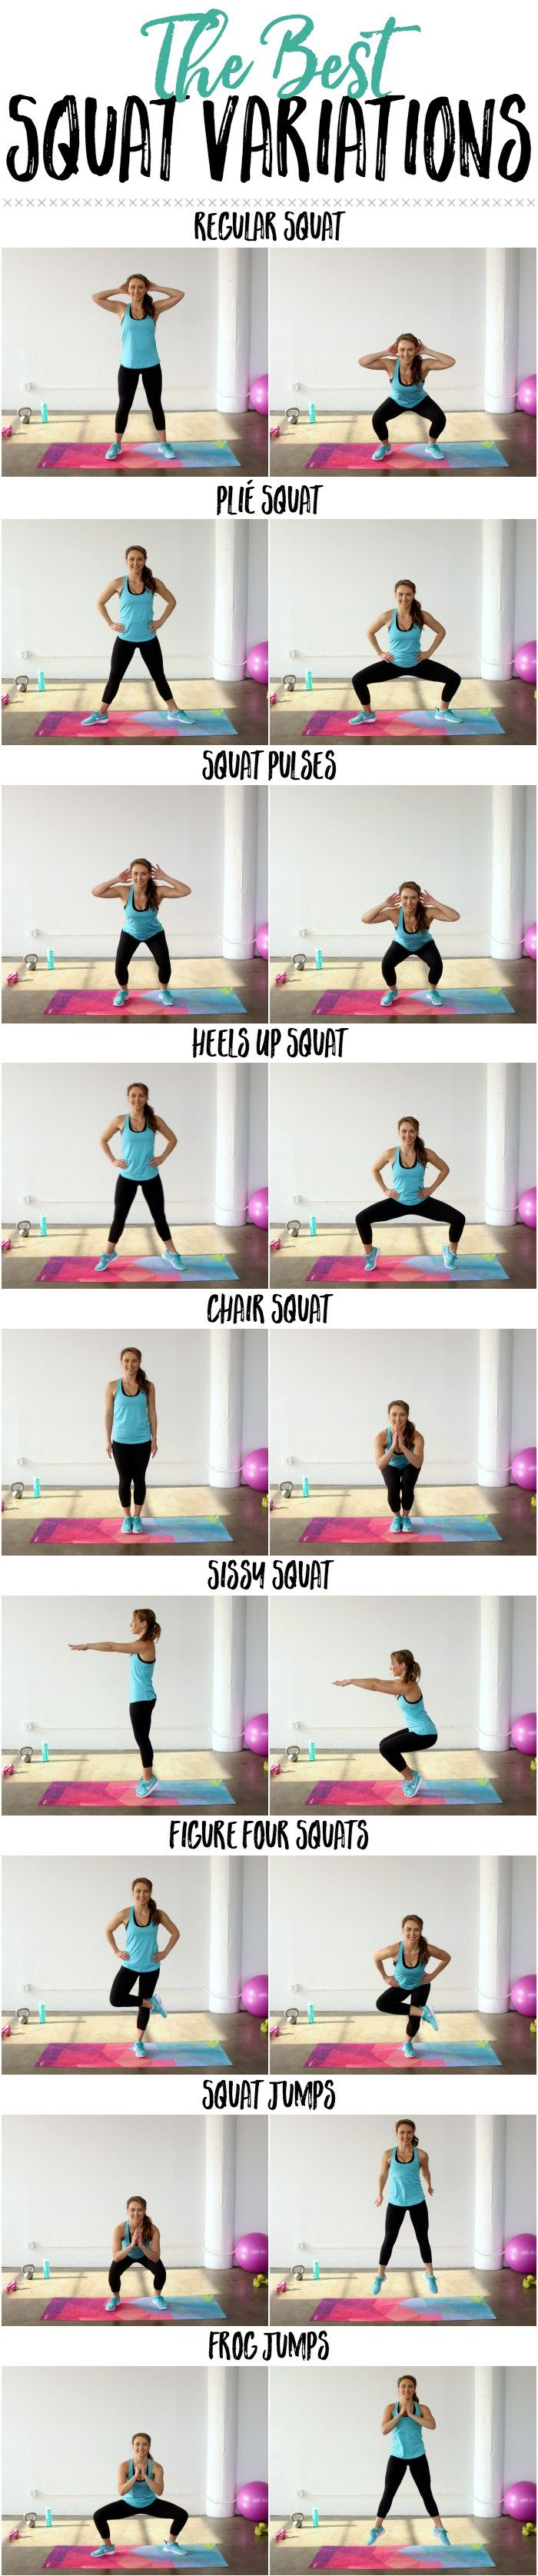 I've gotten a lot of requests to share some different squat variations for out weekly Hump Day Schedule…so I thought I would finally share 10 of the best squat variationsto help keep things interesting. These are the BEST out there for toning up the booty and tightening the tush! You can pick you favorite for …